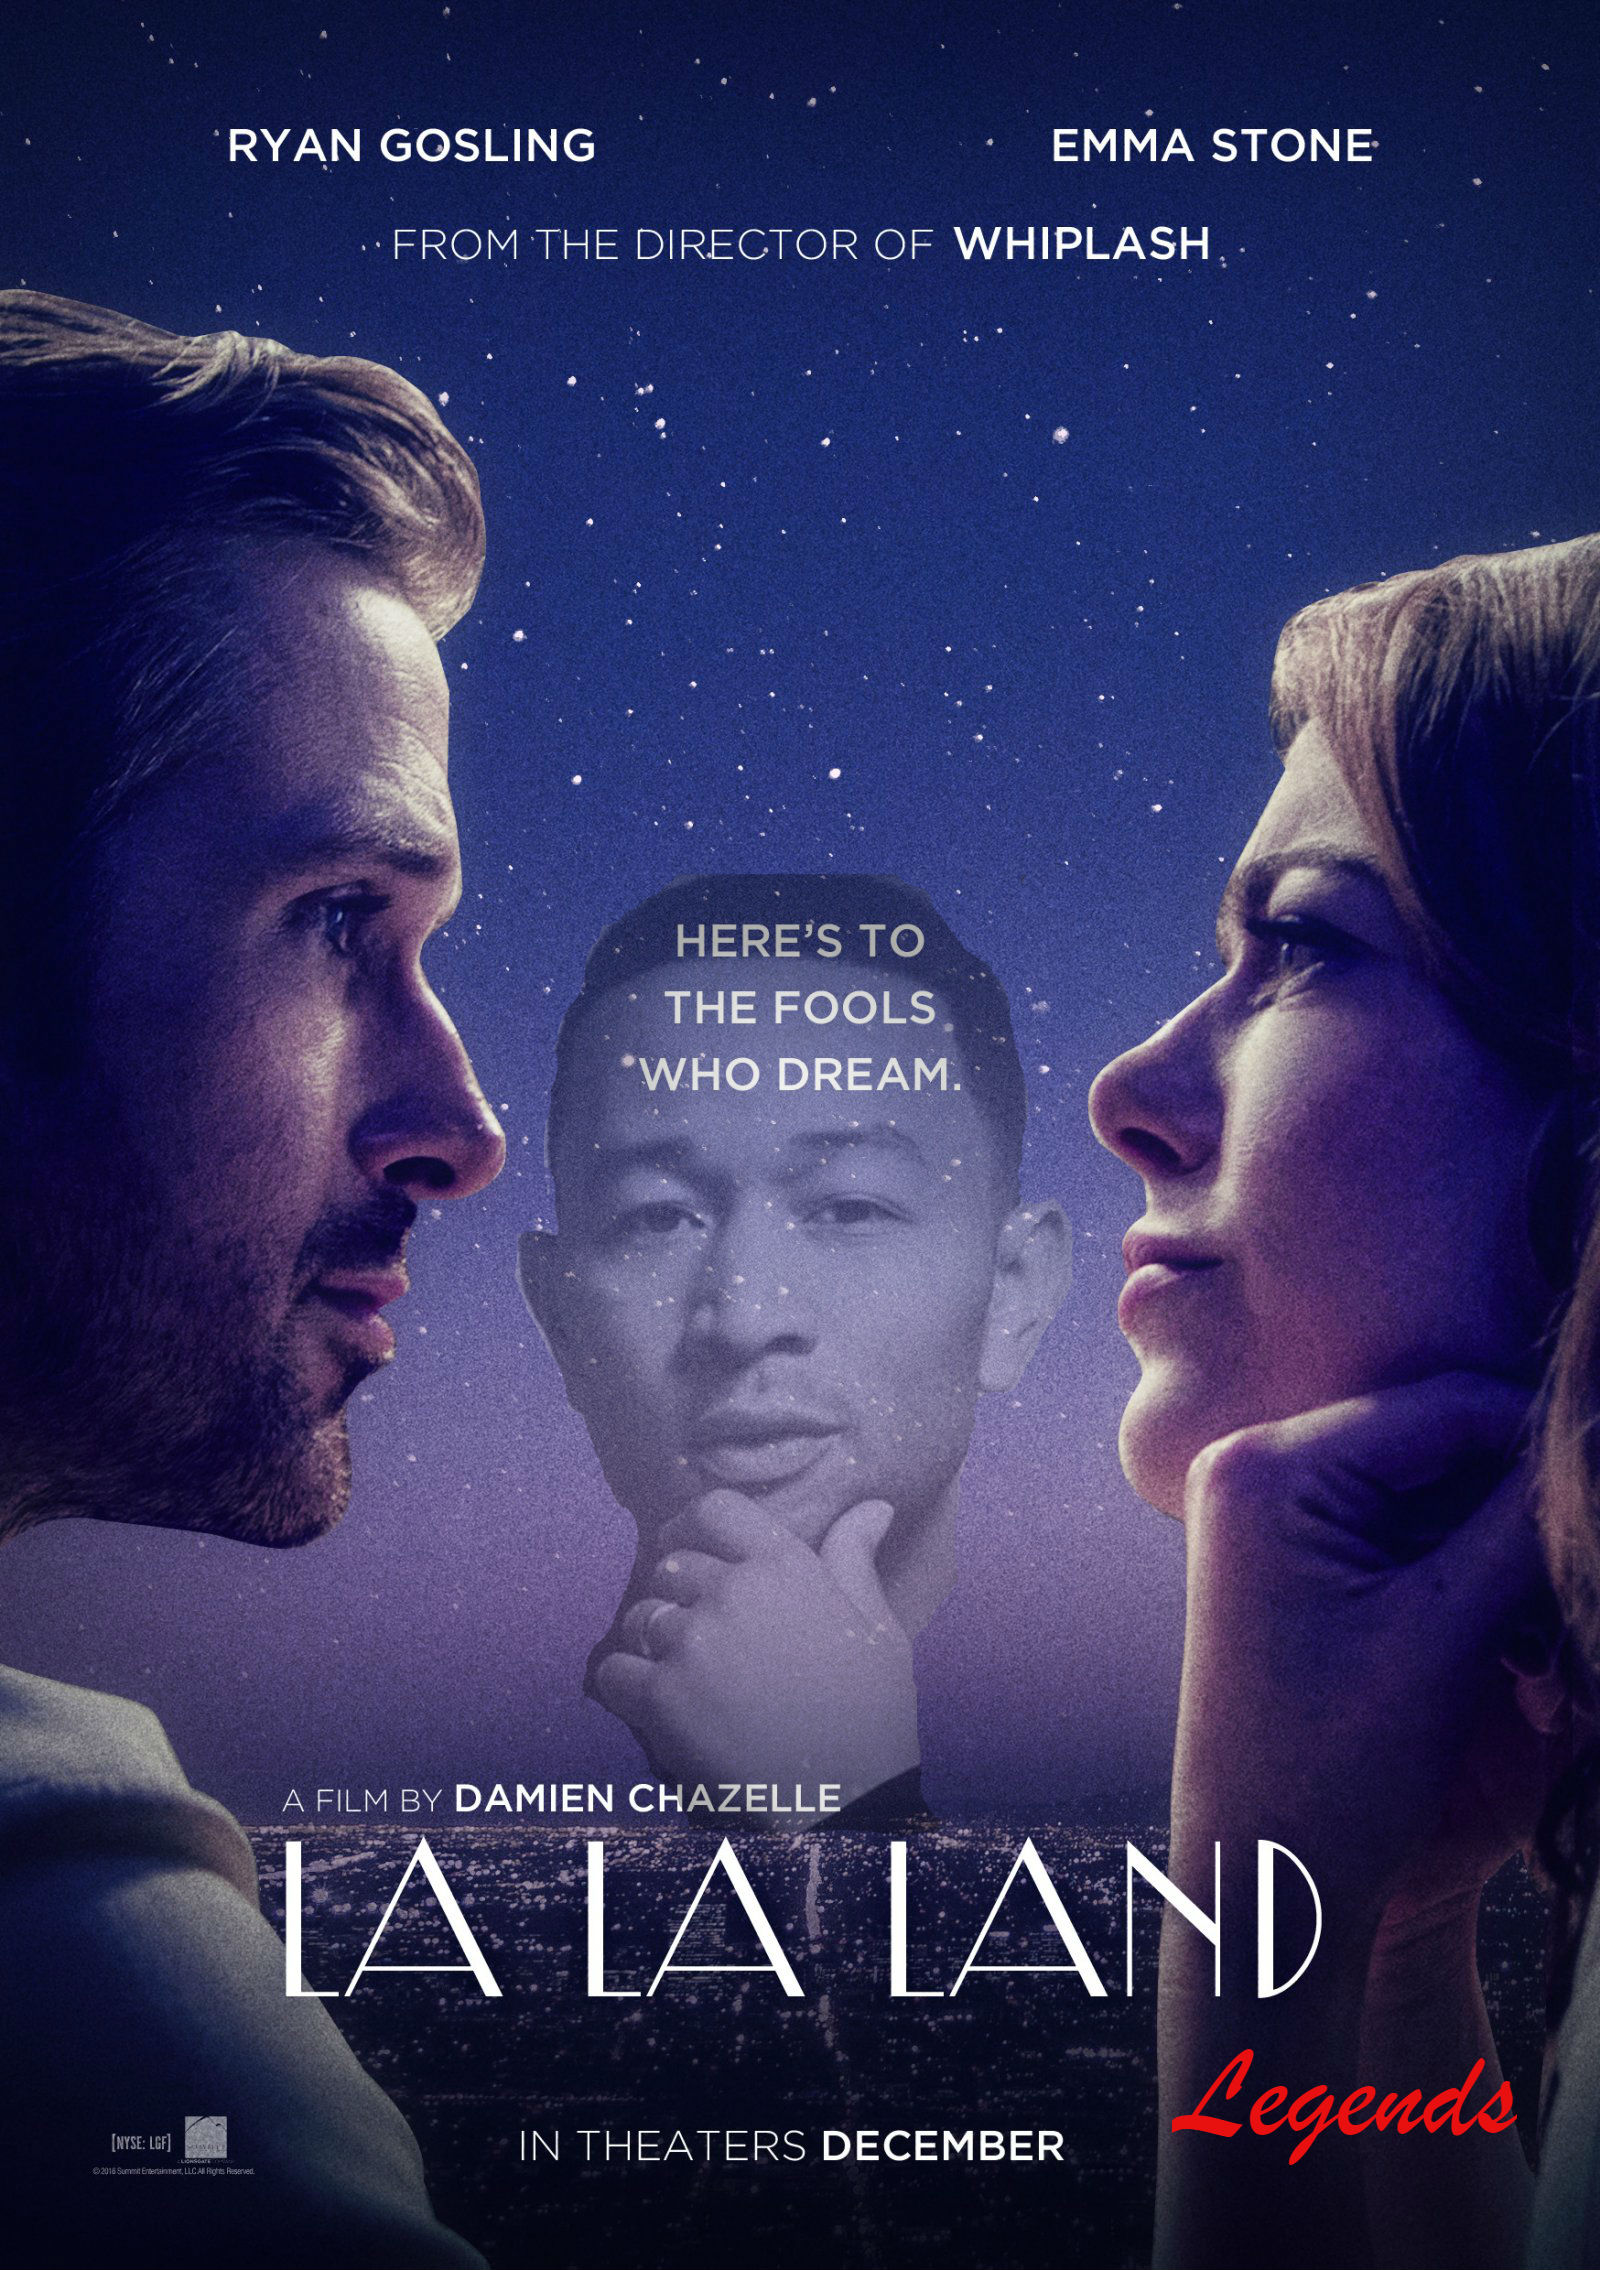 La La Land Legends.jpg